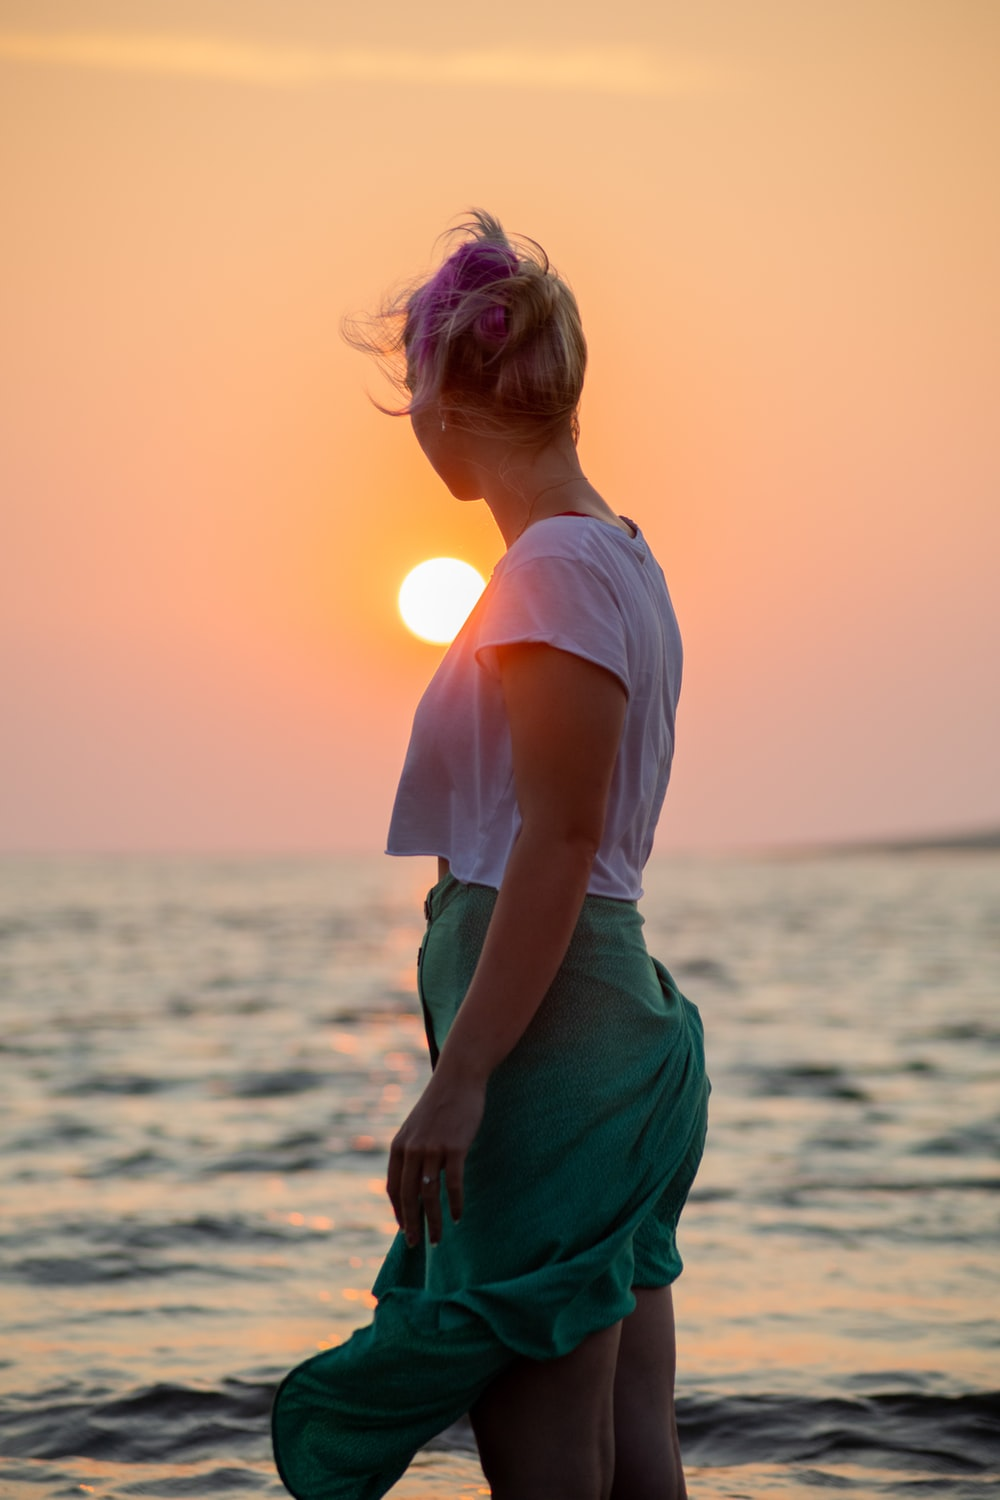 woman in white shirt and green skirt standing on beach during sunset